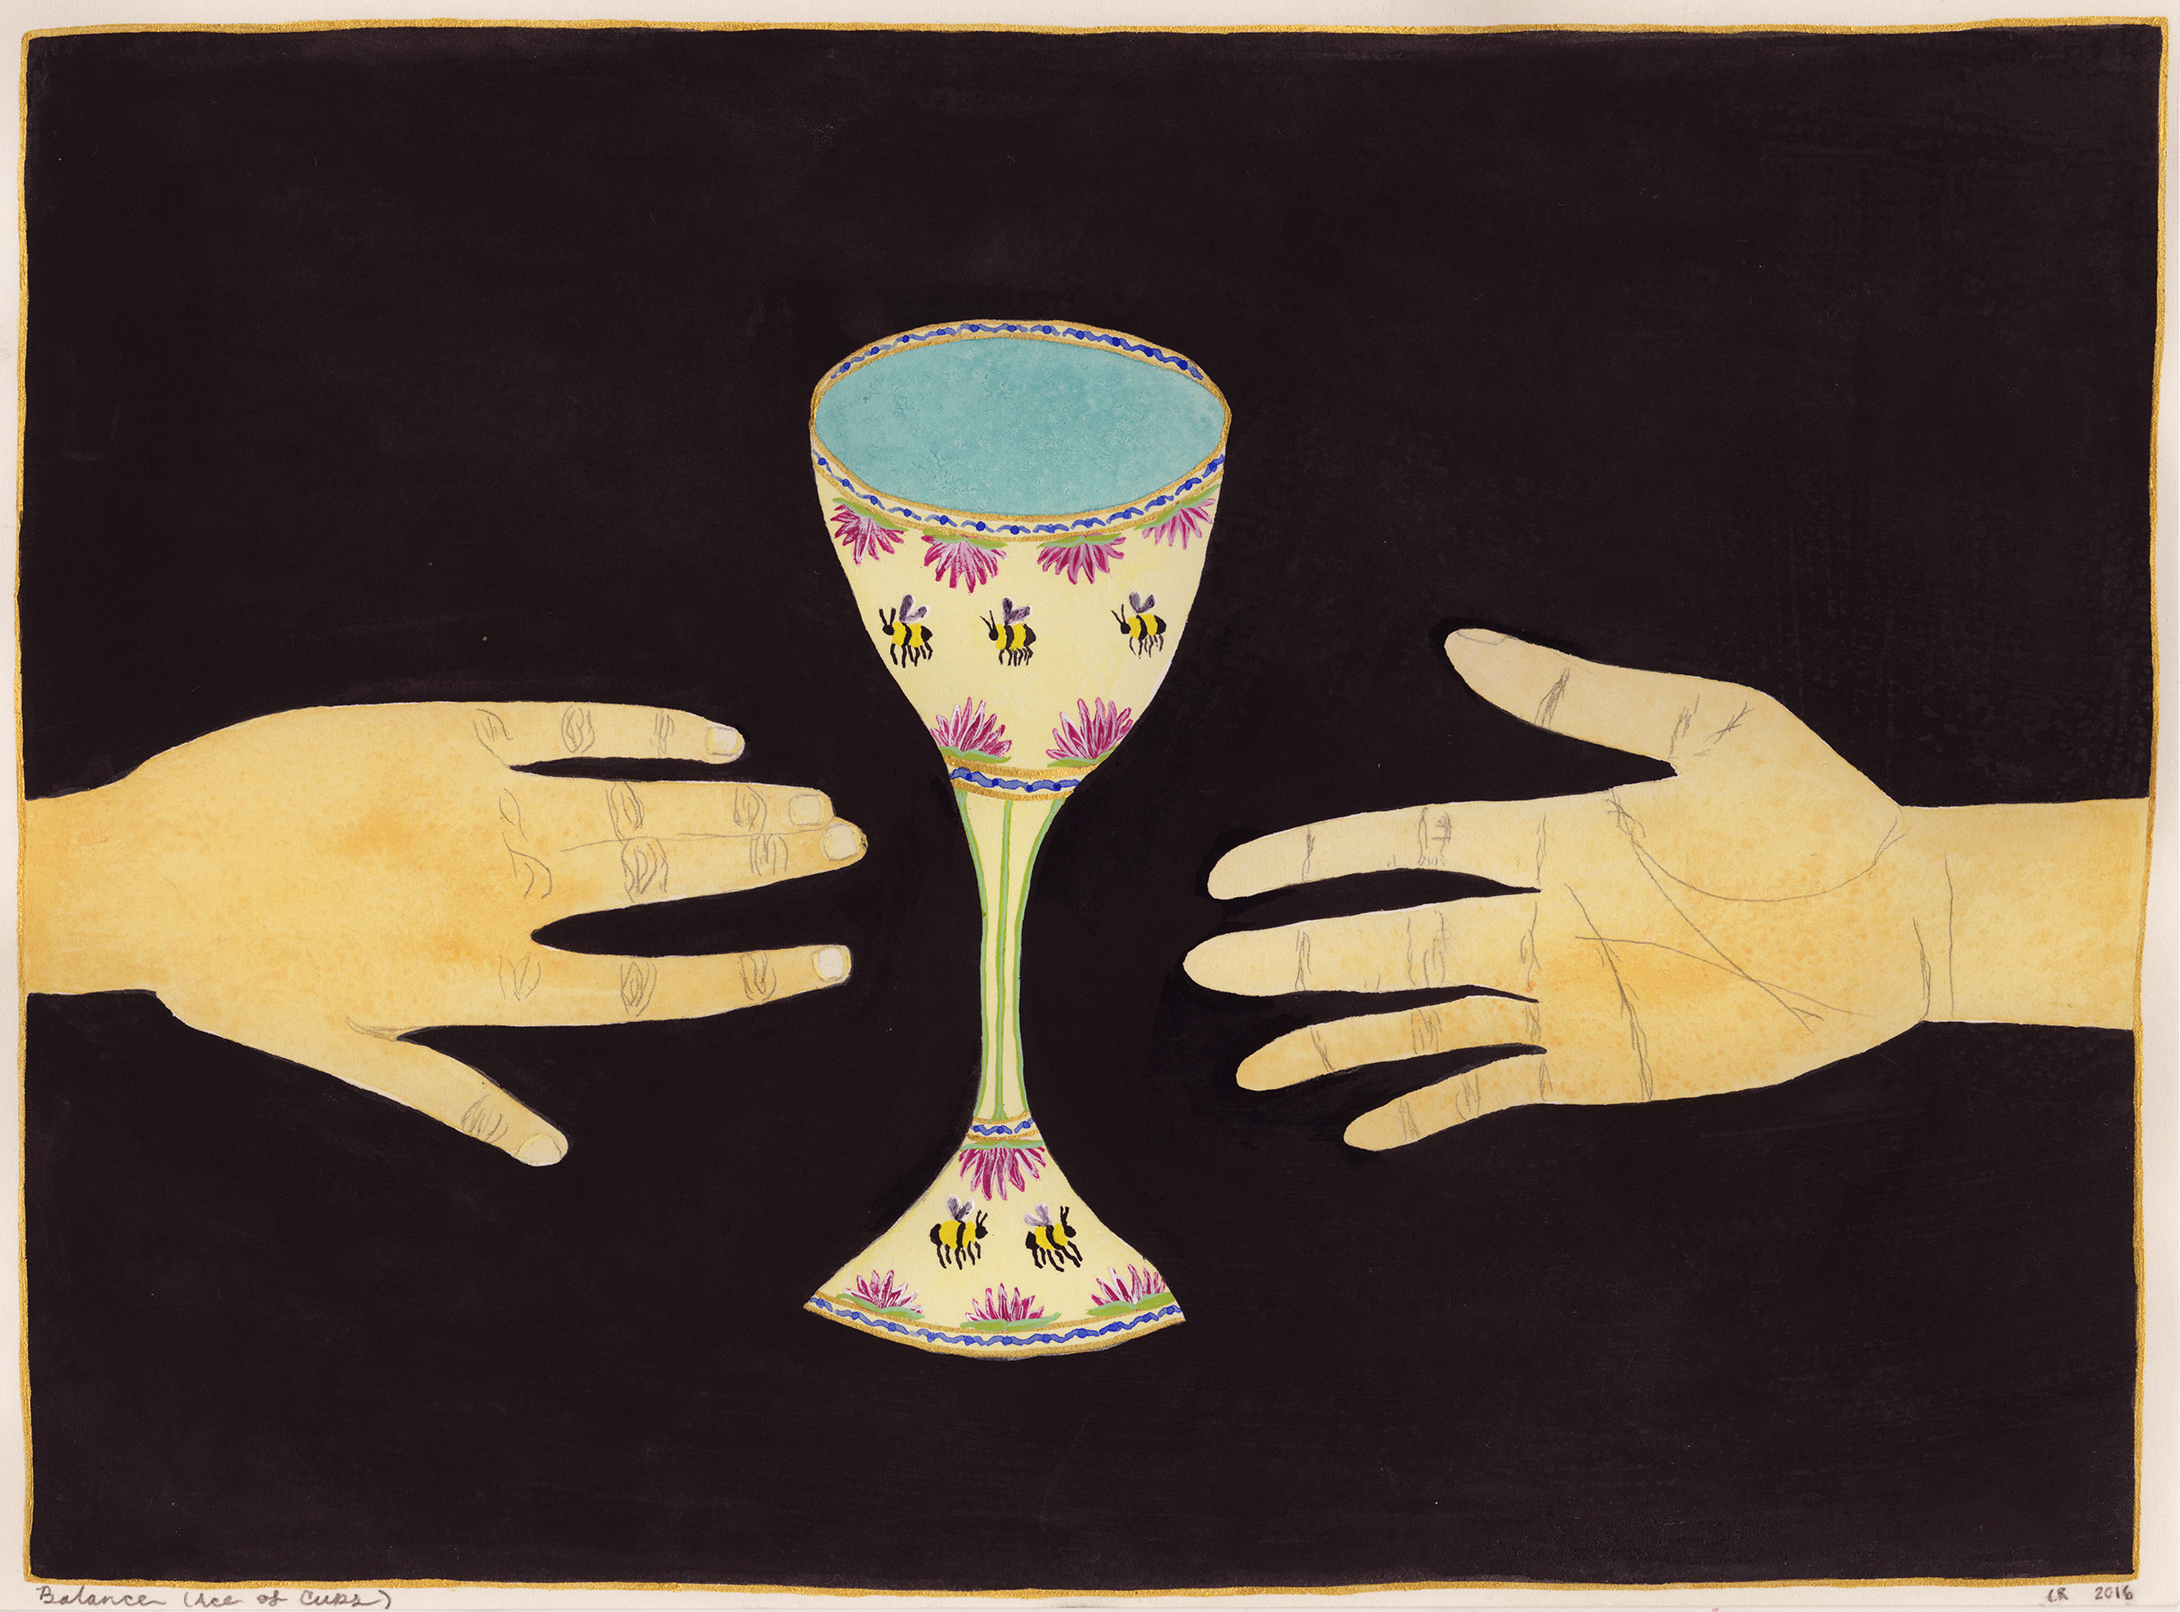 Balance (Ace of Cups)